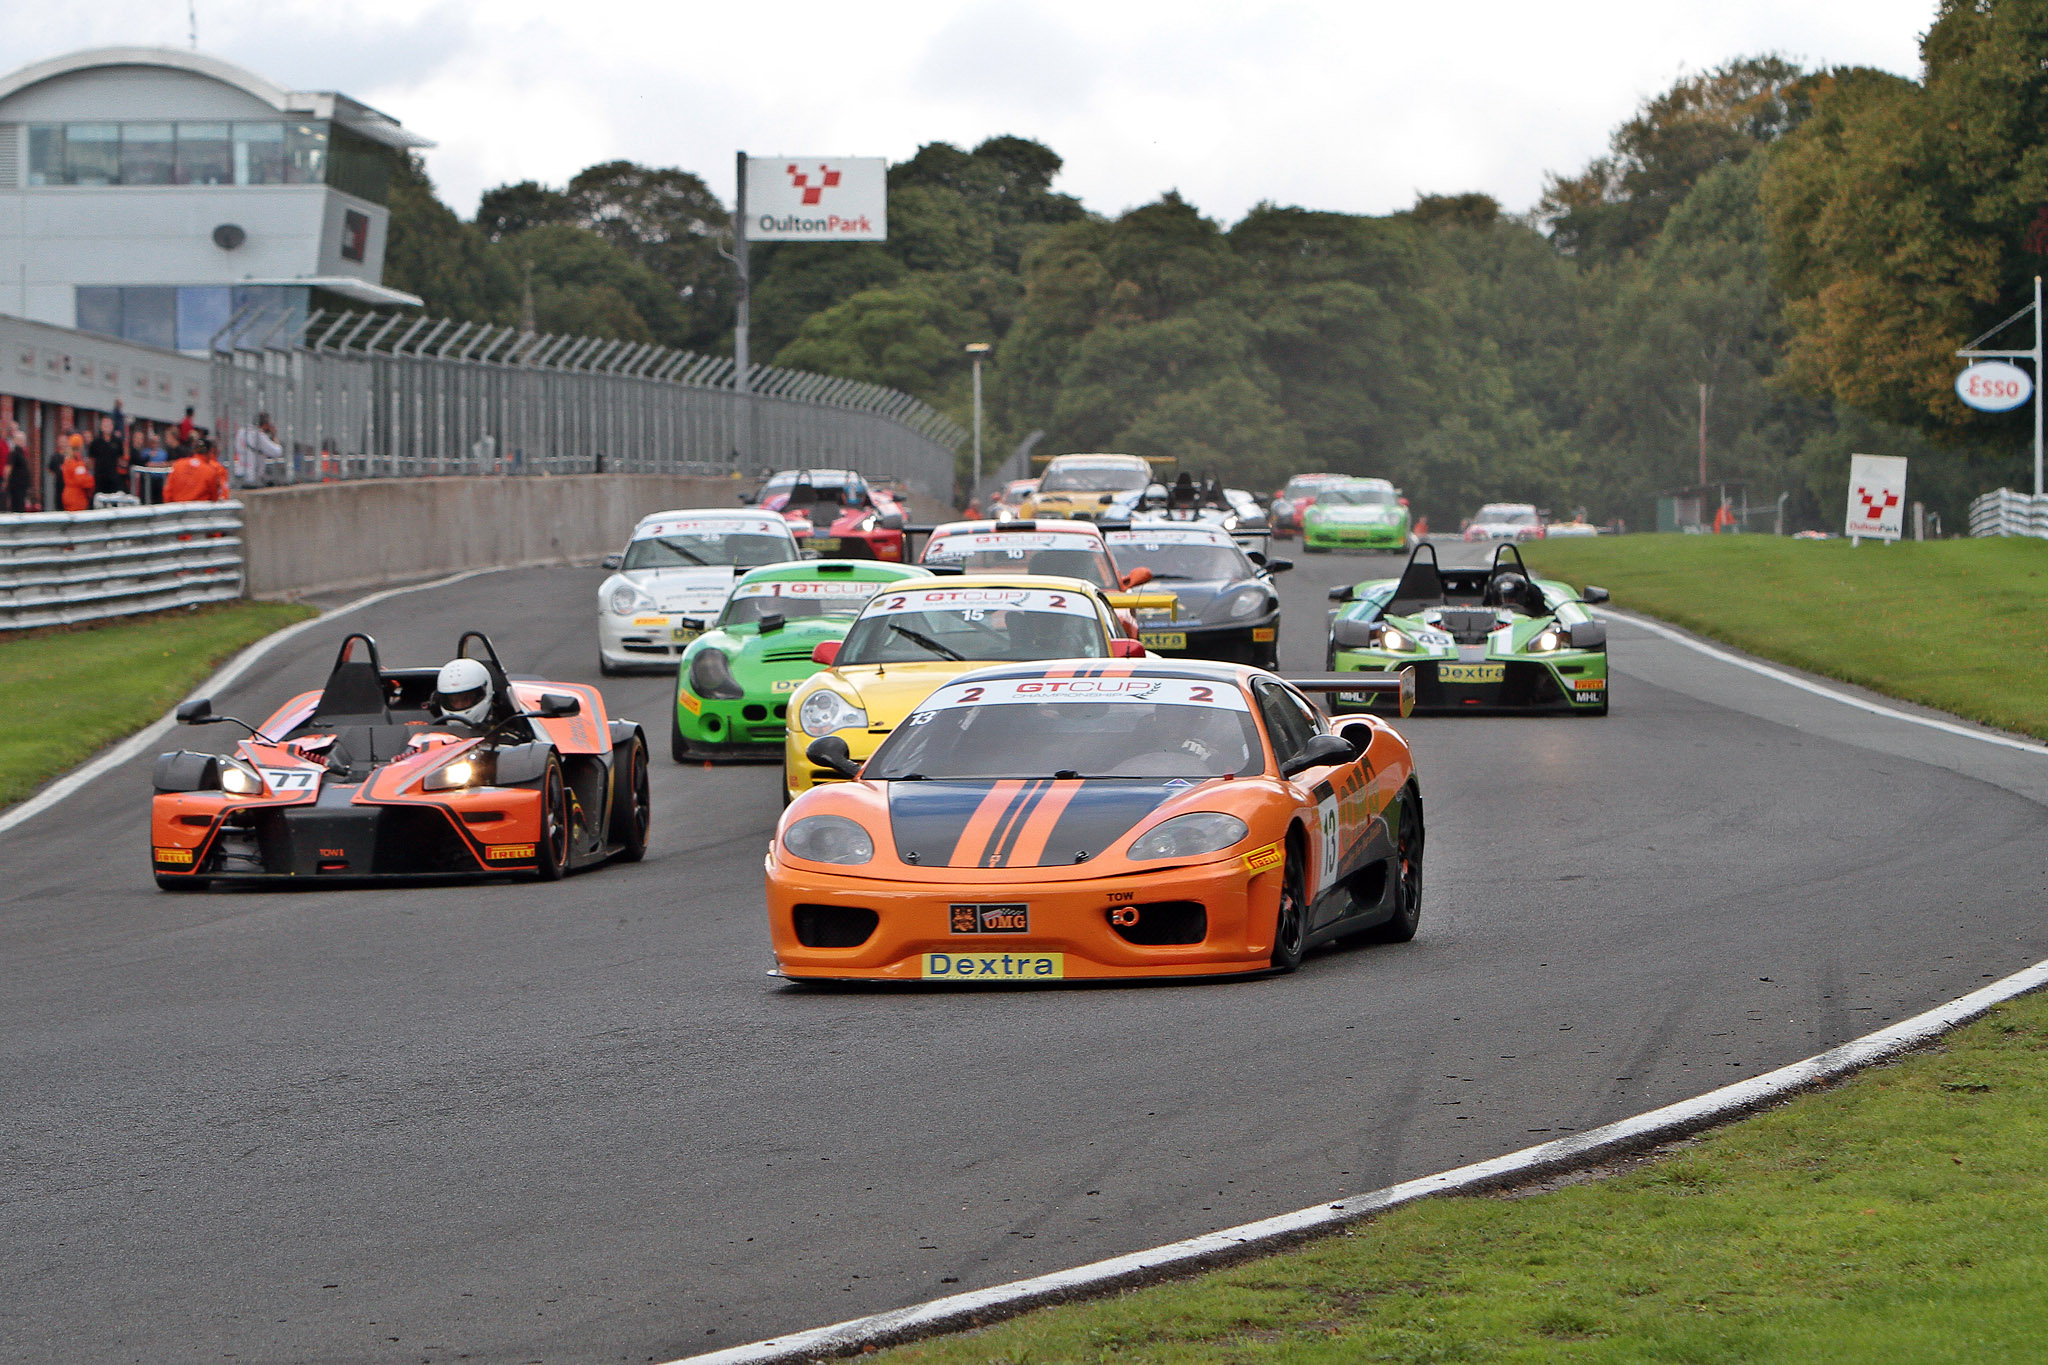 MSVR News - MSVR sportscars star at Oulton Park this Saturday